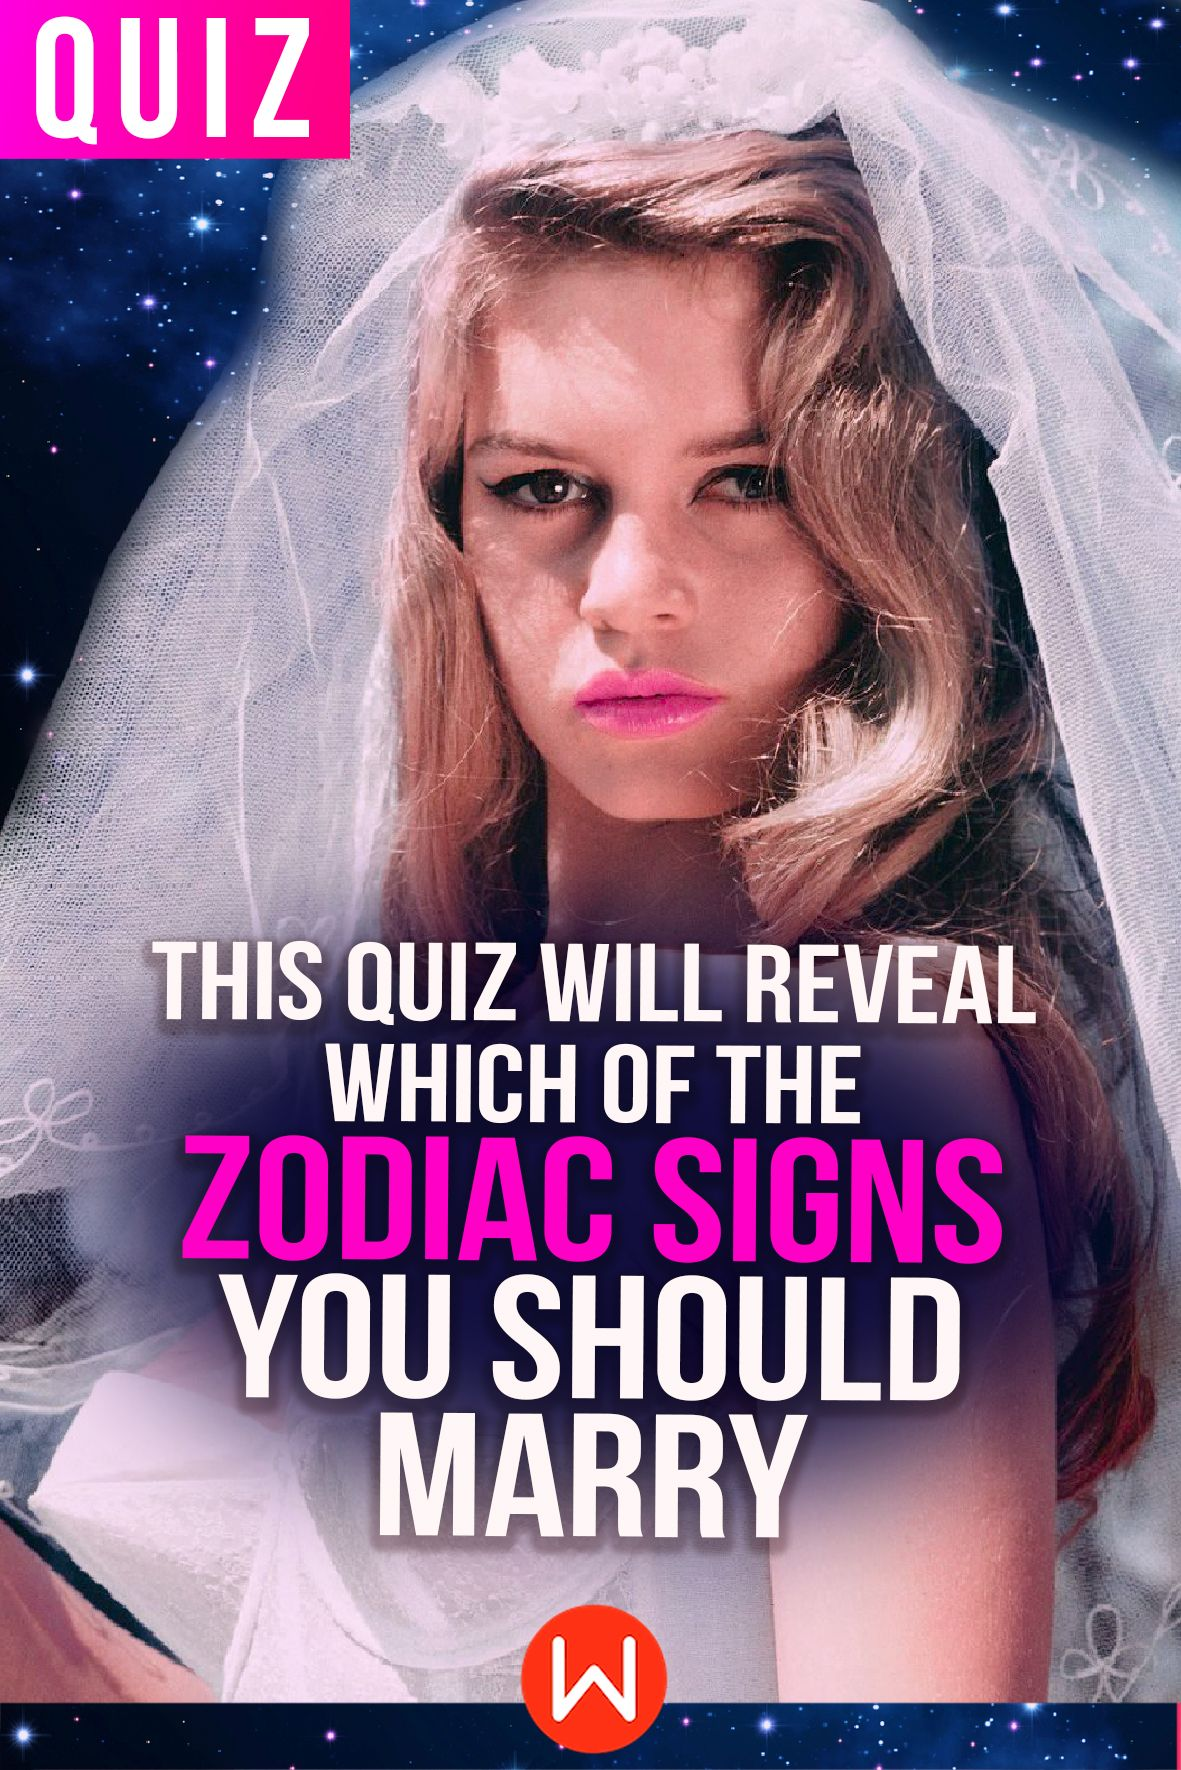 This Quiz Will Reveal Which Of The Zodiac Signs You Should Marry